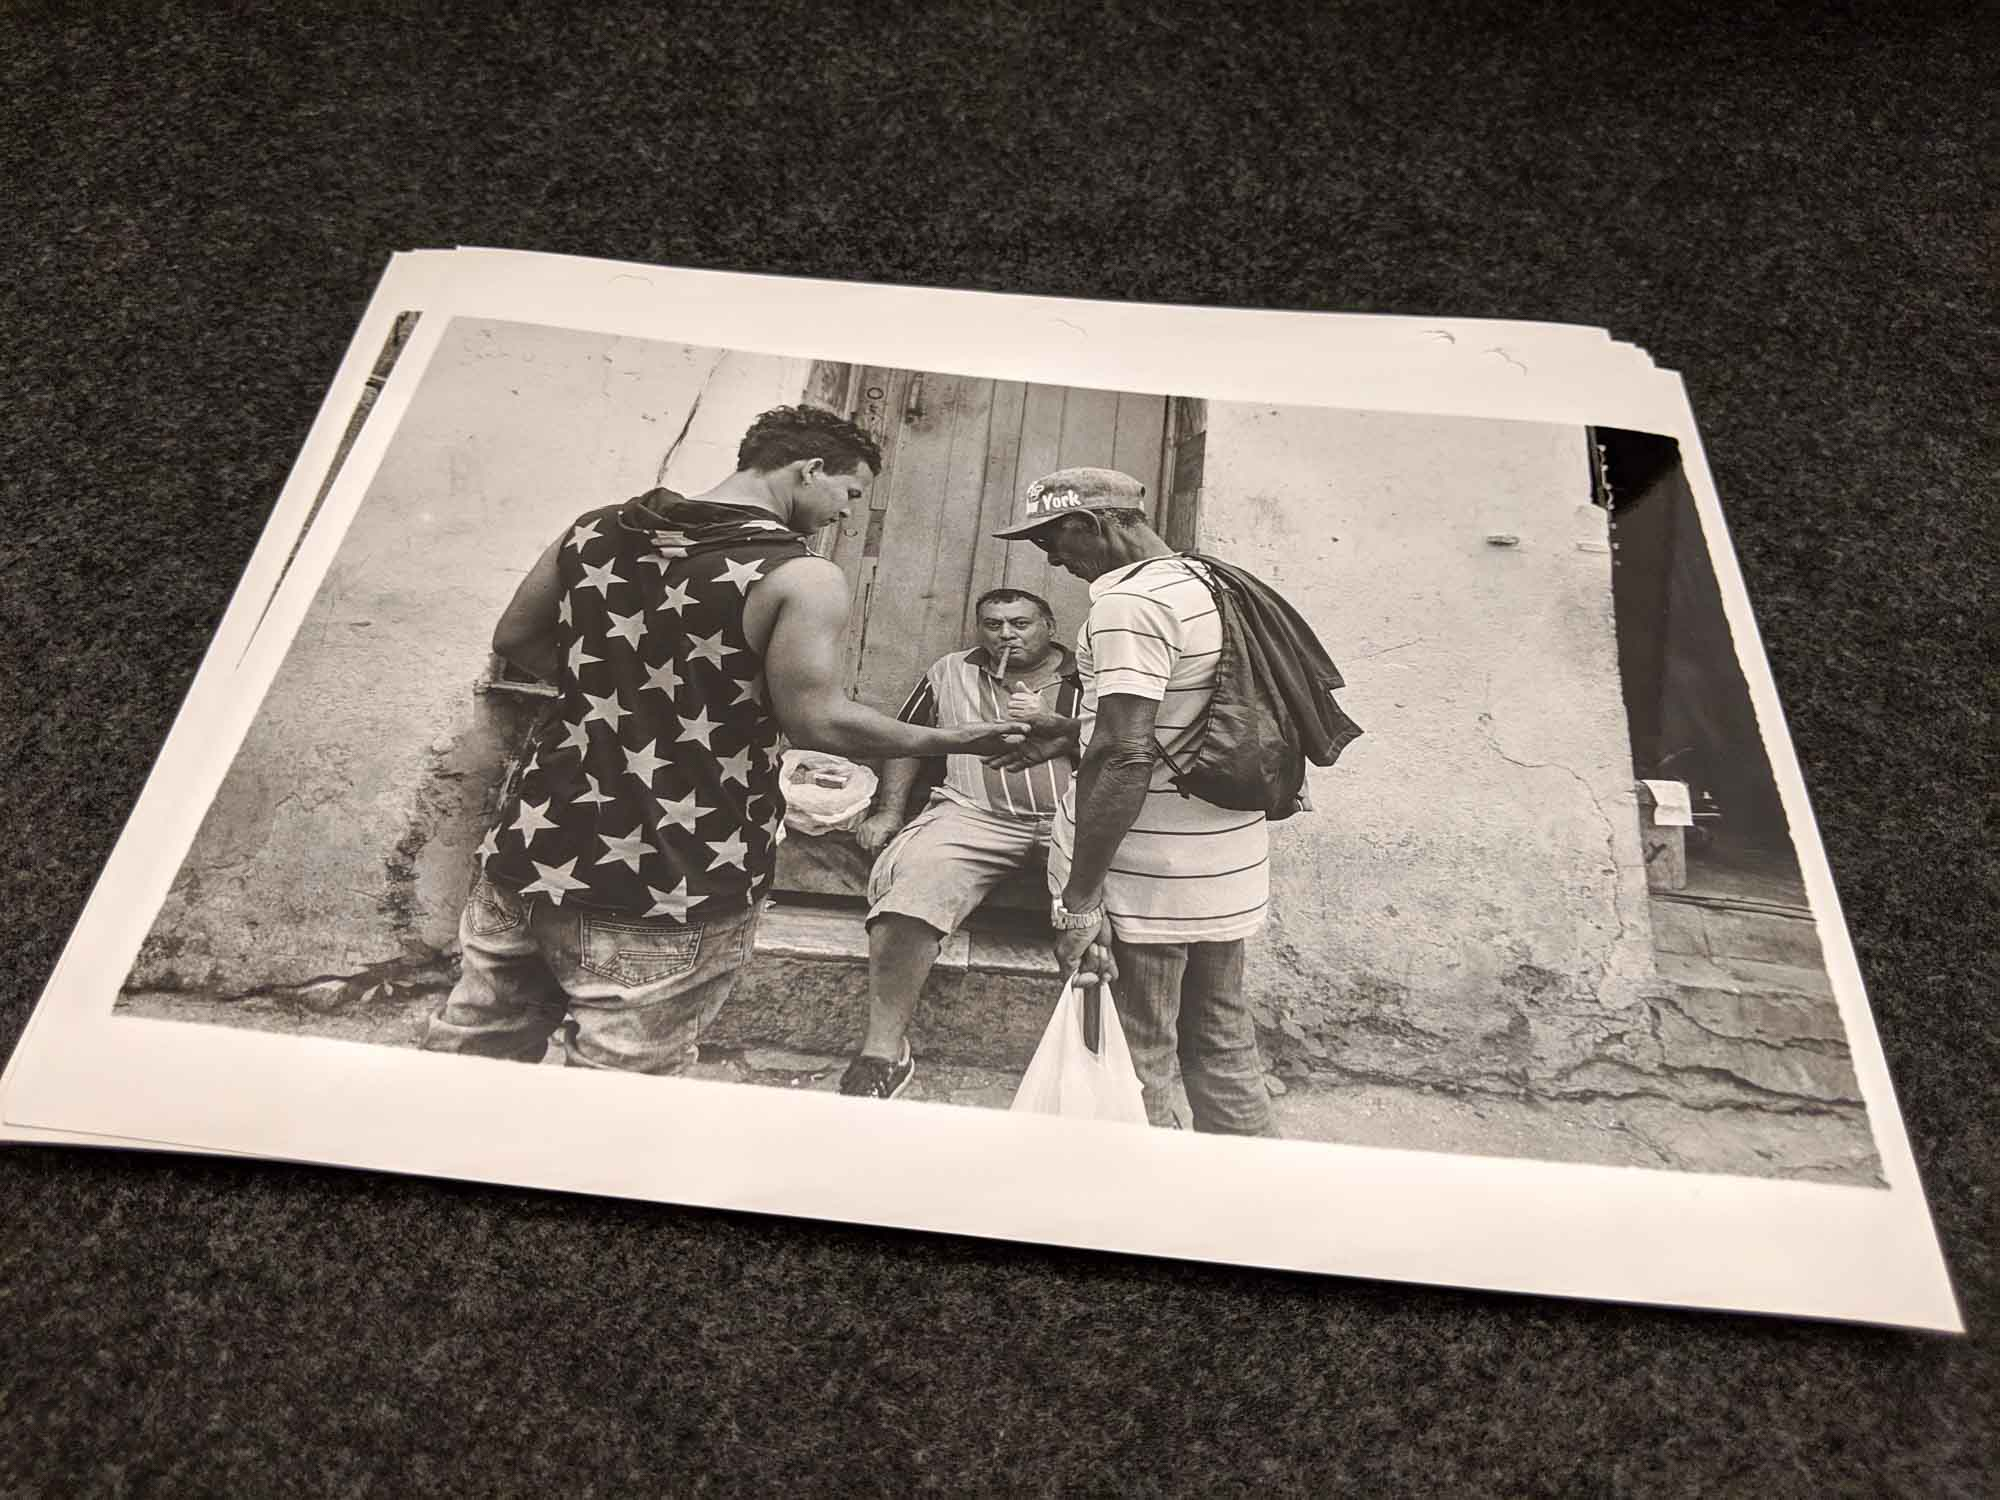 The Latent Image - Print 03